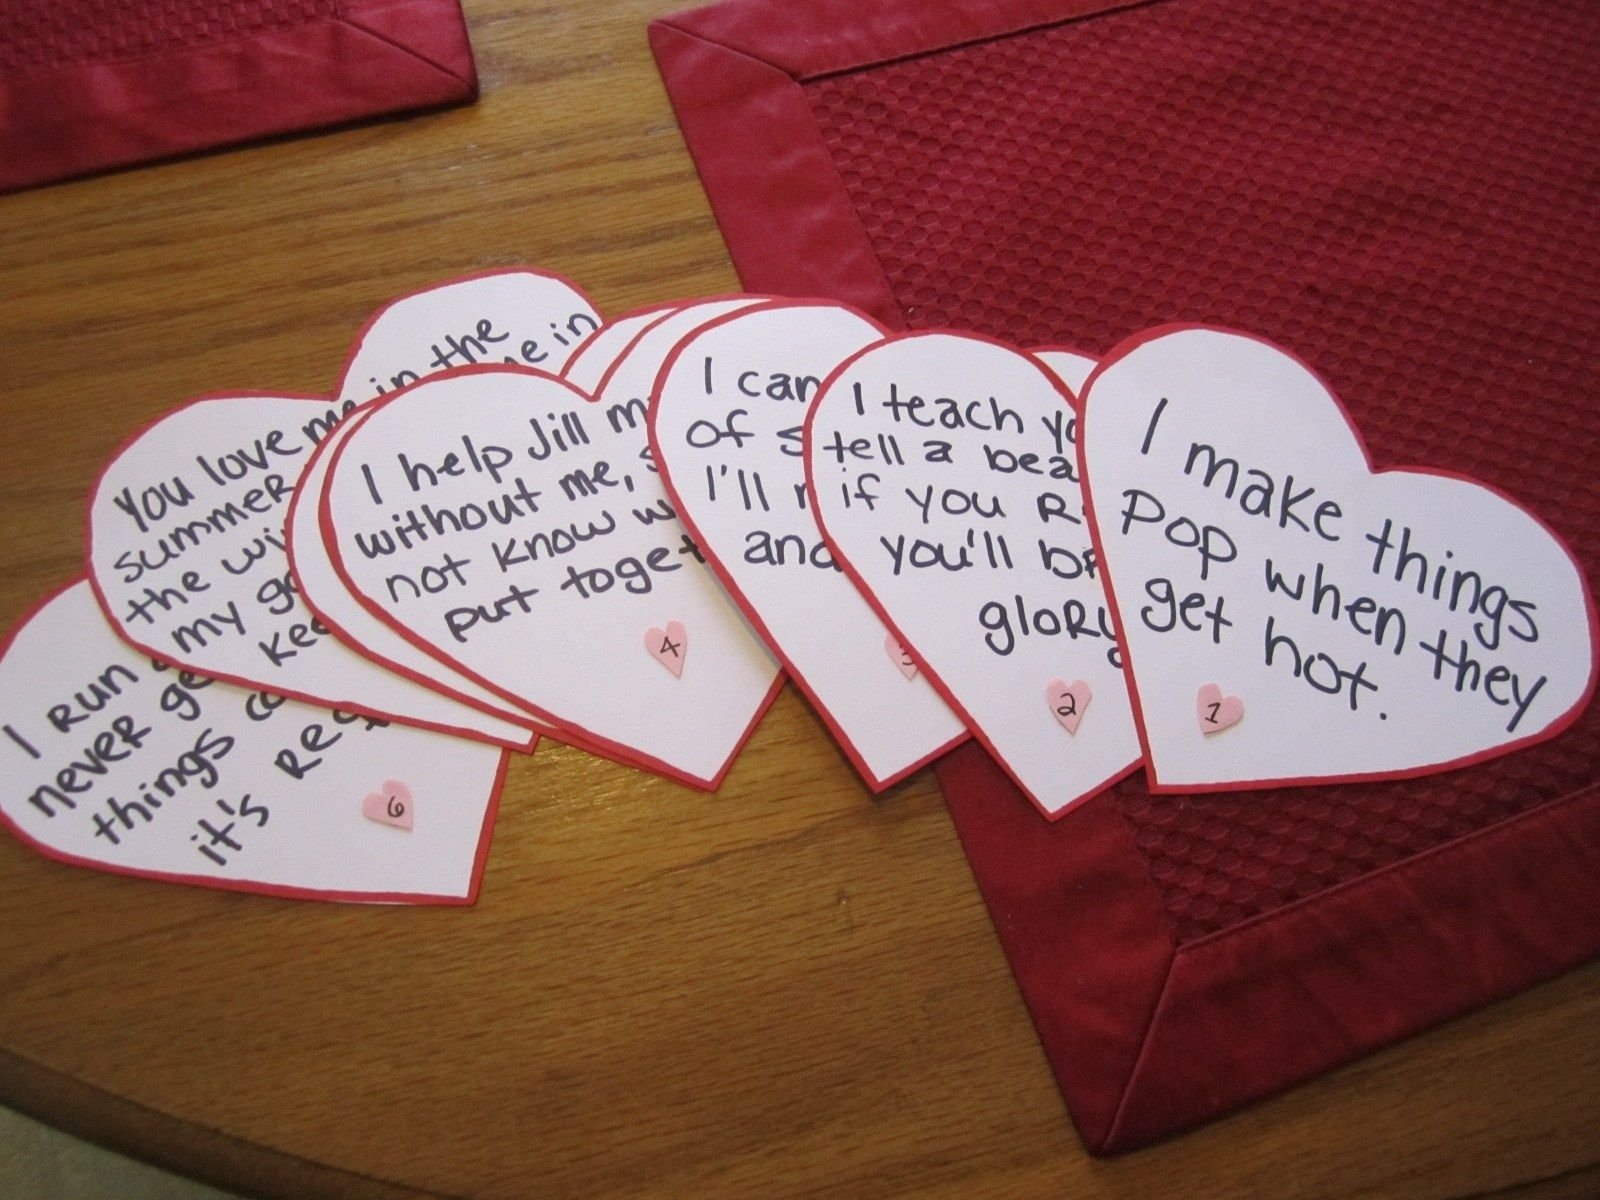 10 Awesome Valentines Day Ideas For Her Creative creative valentines day gifts for him long distance ten diy 7 2020